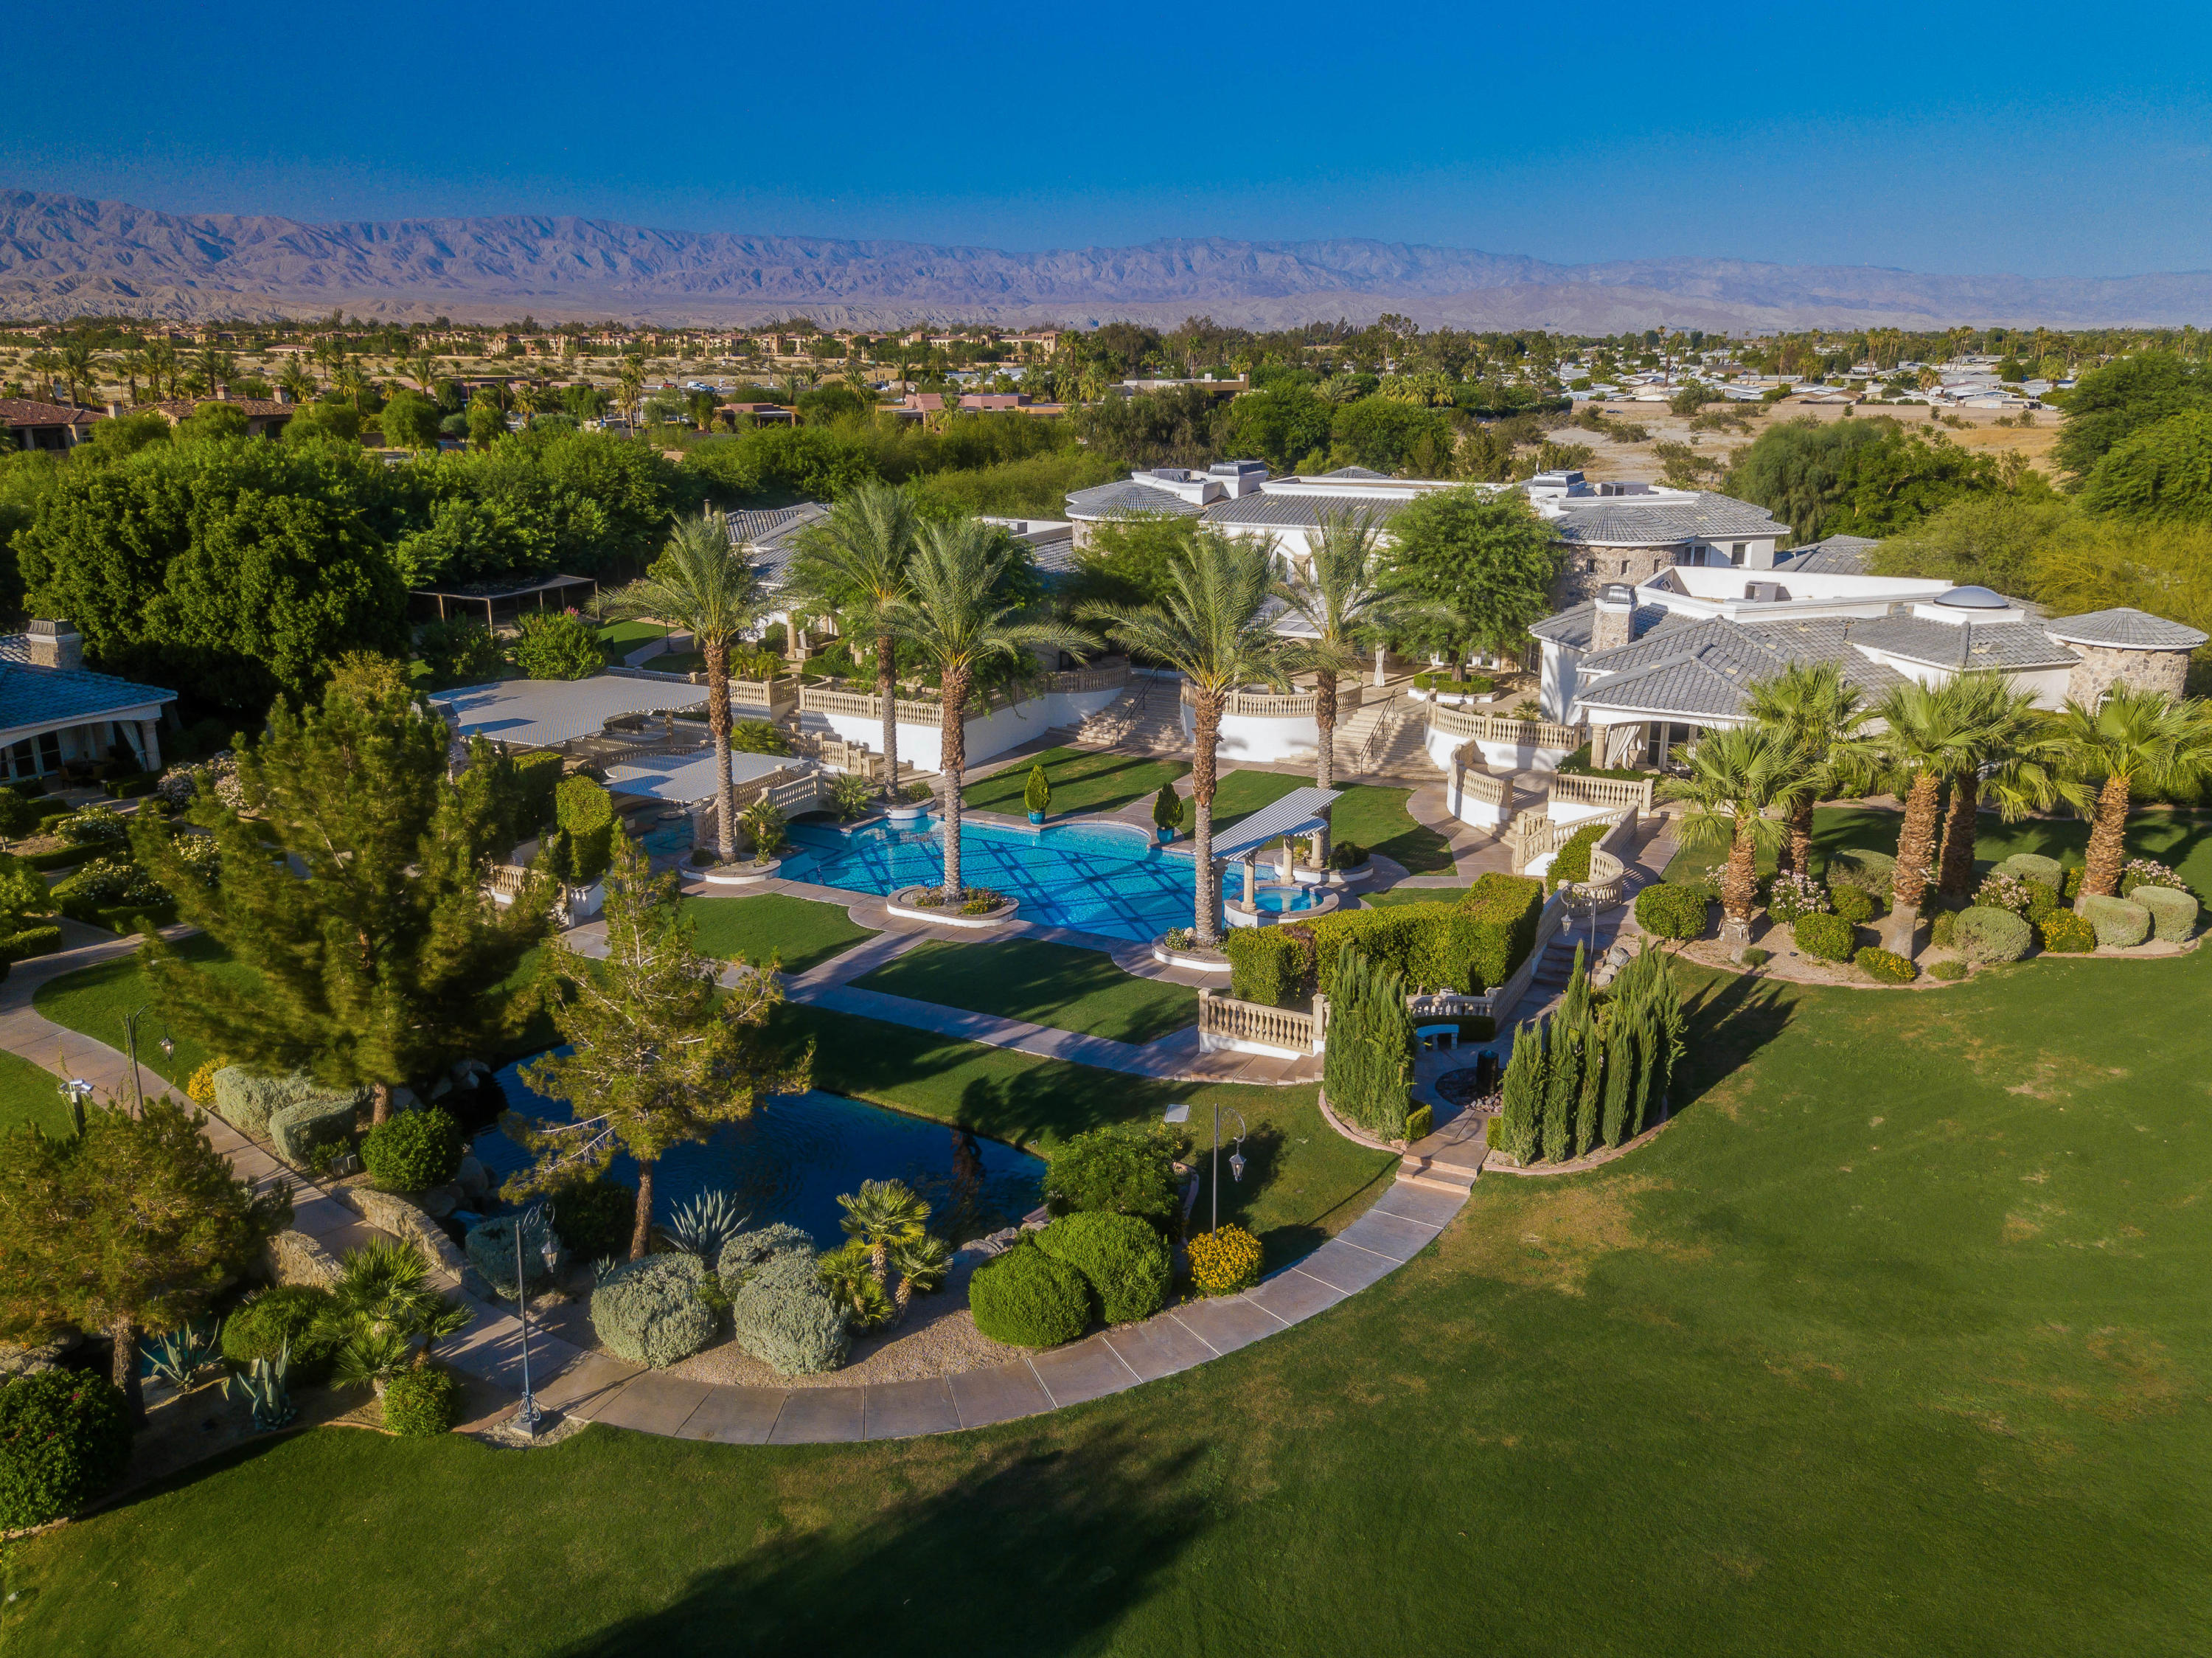 Photo of 1 St Petersburg Court, Rancho Mirage, CA 92270